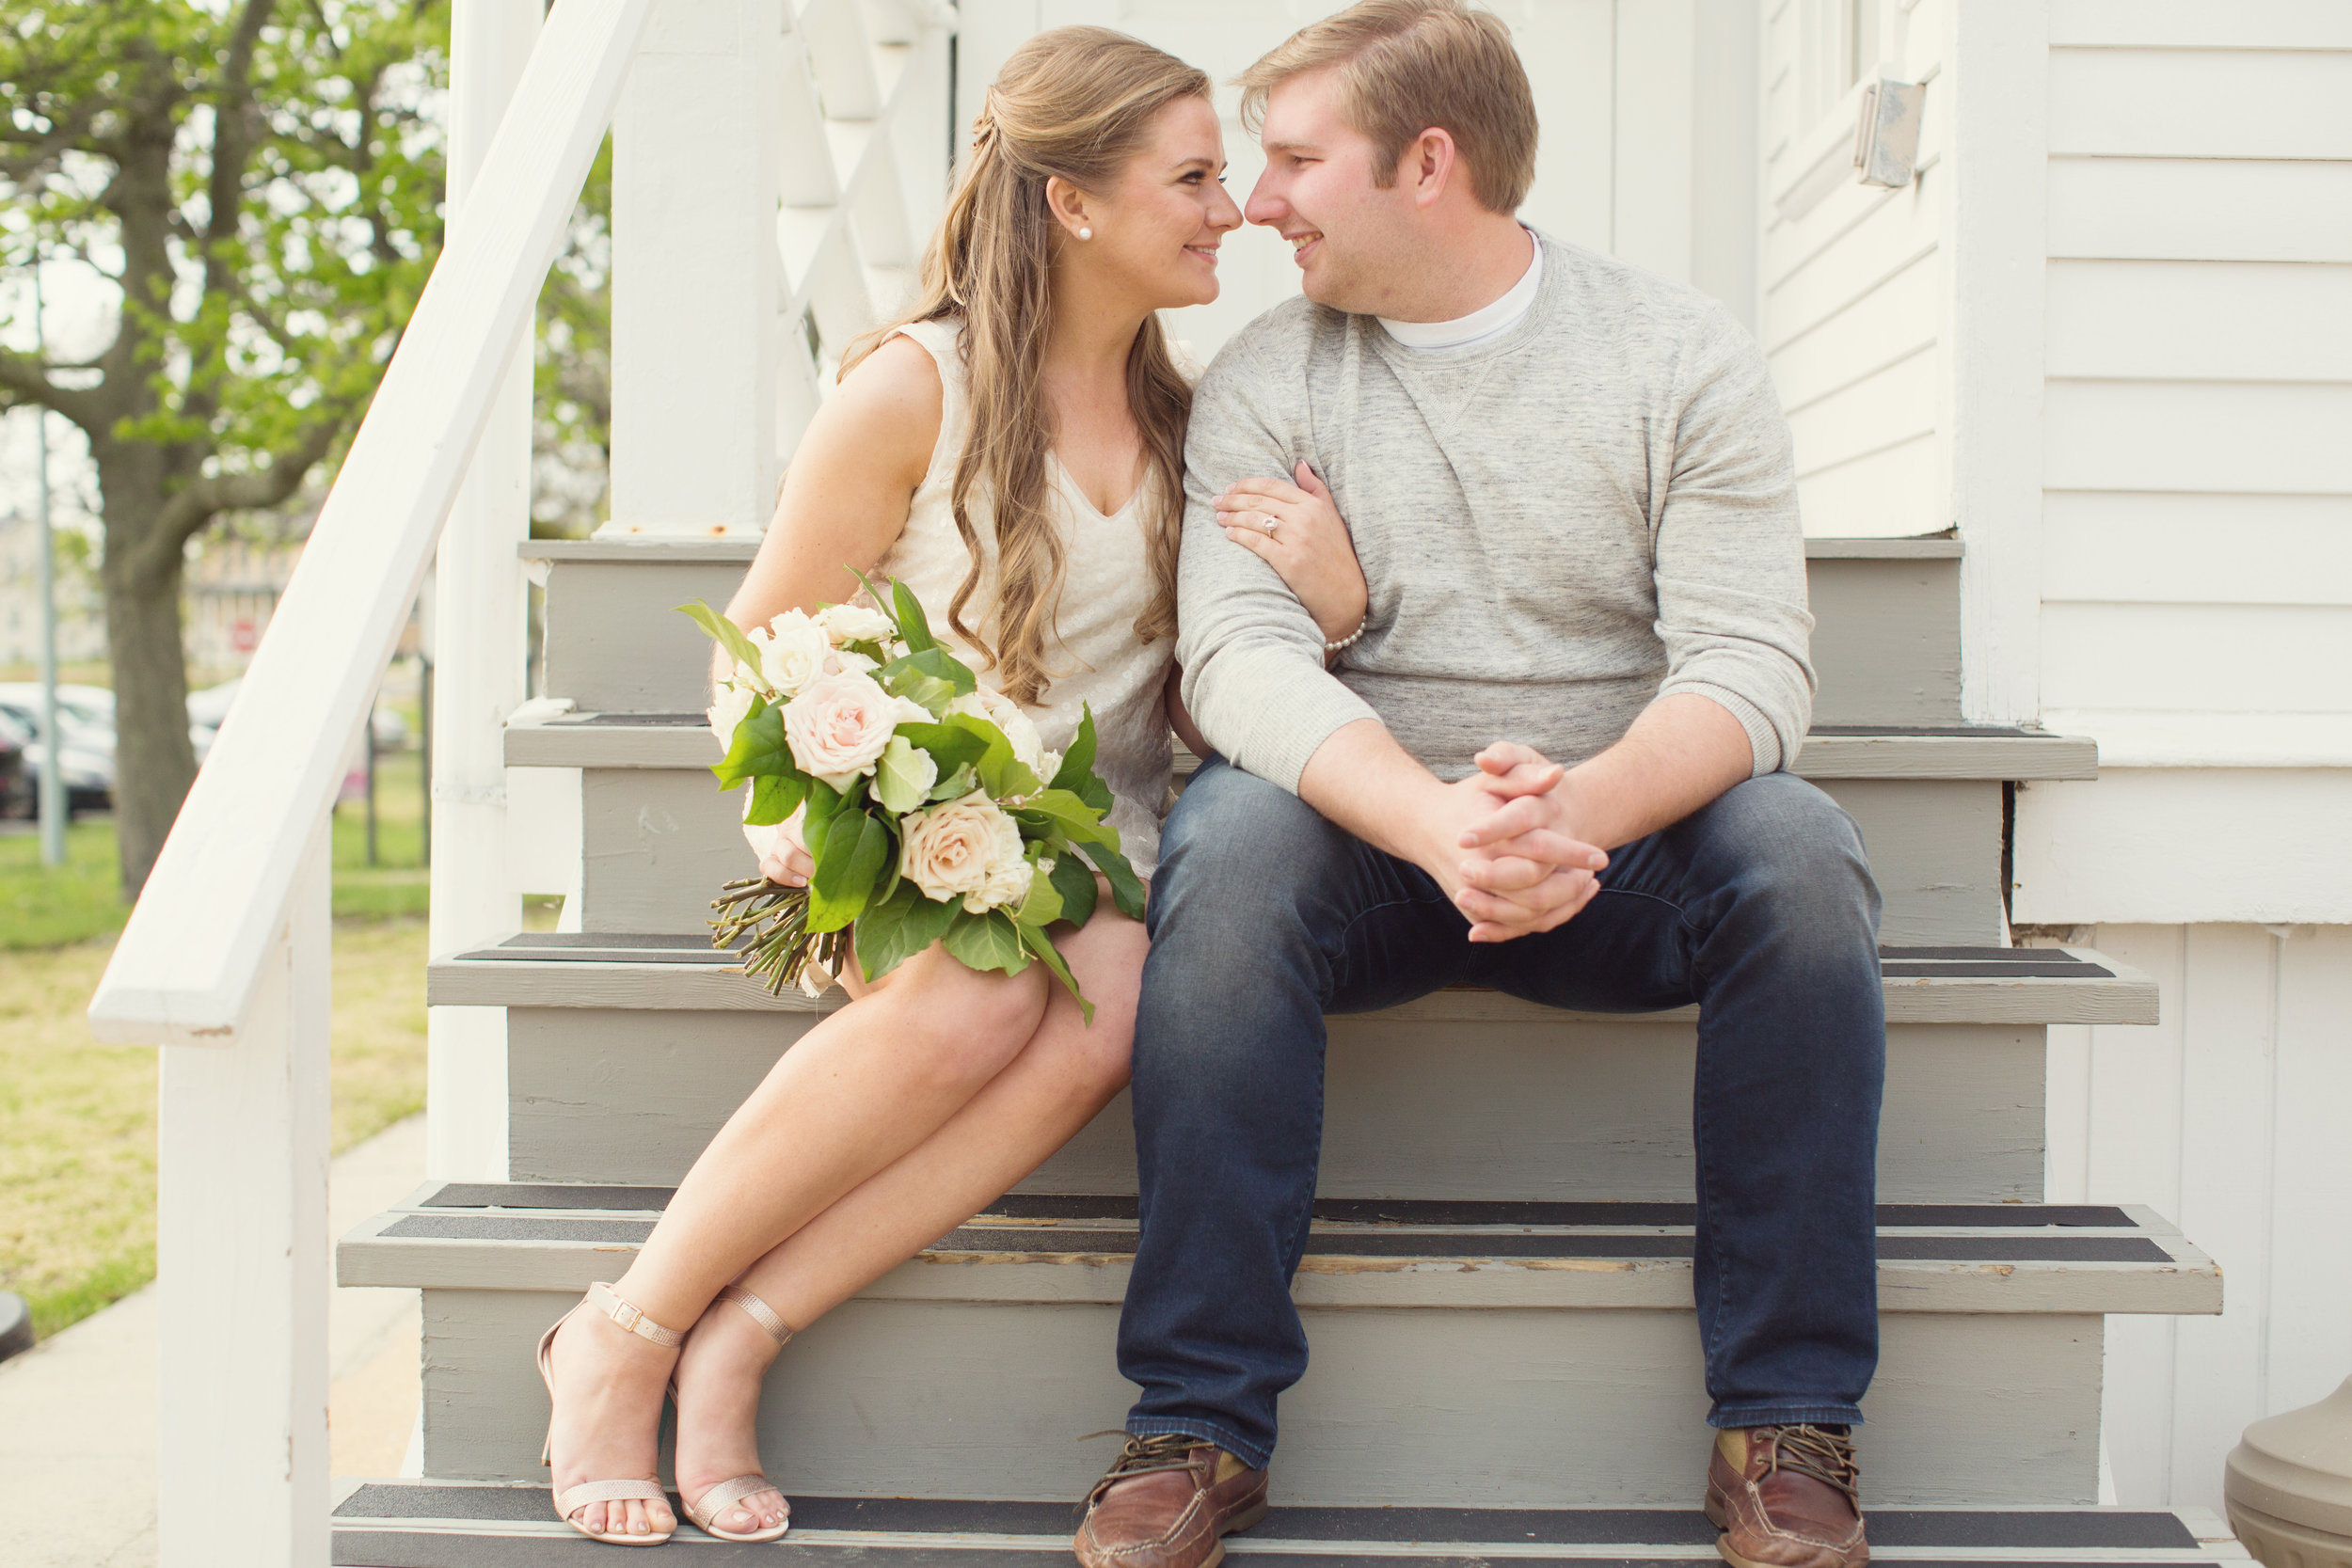 Sandy Hook New Jersey Beach Engagement Session with Magnolia West Events and Jaye Kogut Photography at Light House